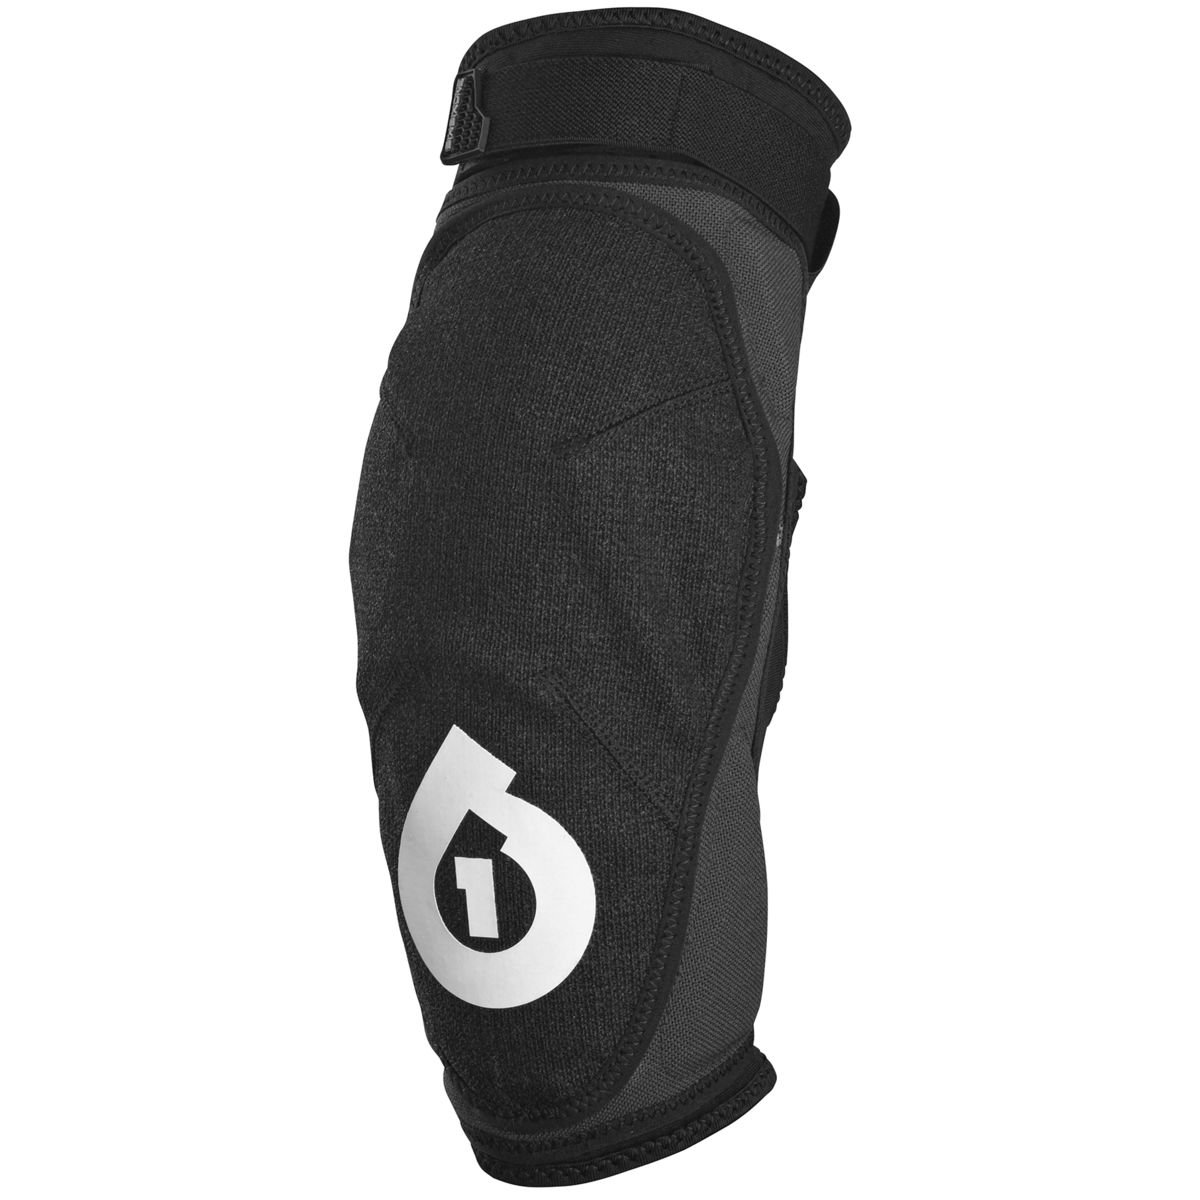 SixSixOne Unisex-Adult Evo Elbow Guard II (Black, Small)